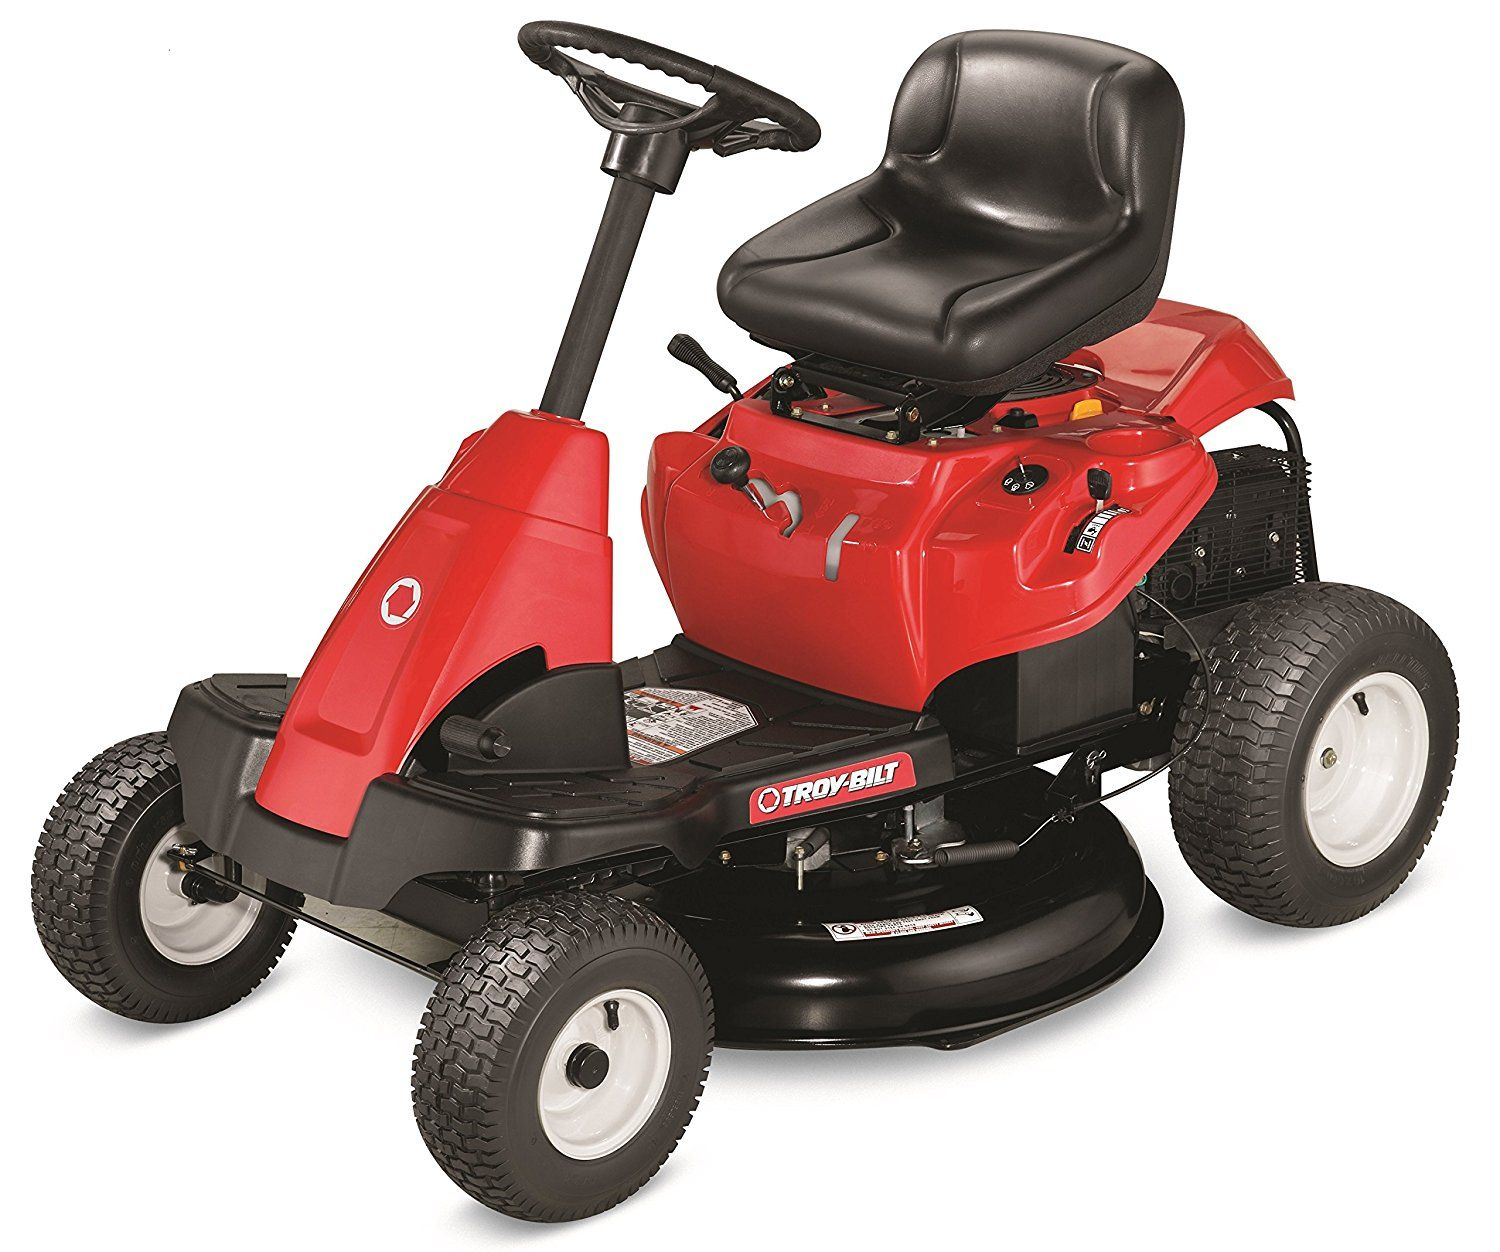 Electric Riding Lawn Mower Best Riding Lawn Mower Best Lawn Tractor Electric Riding Lawn Mower